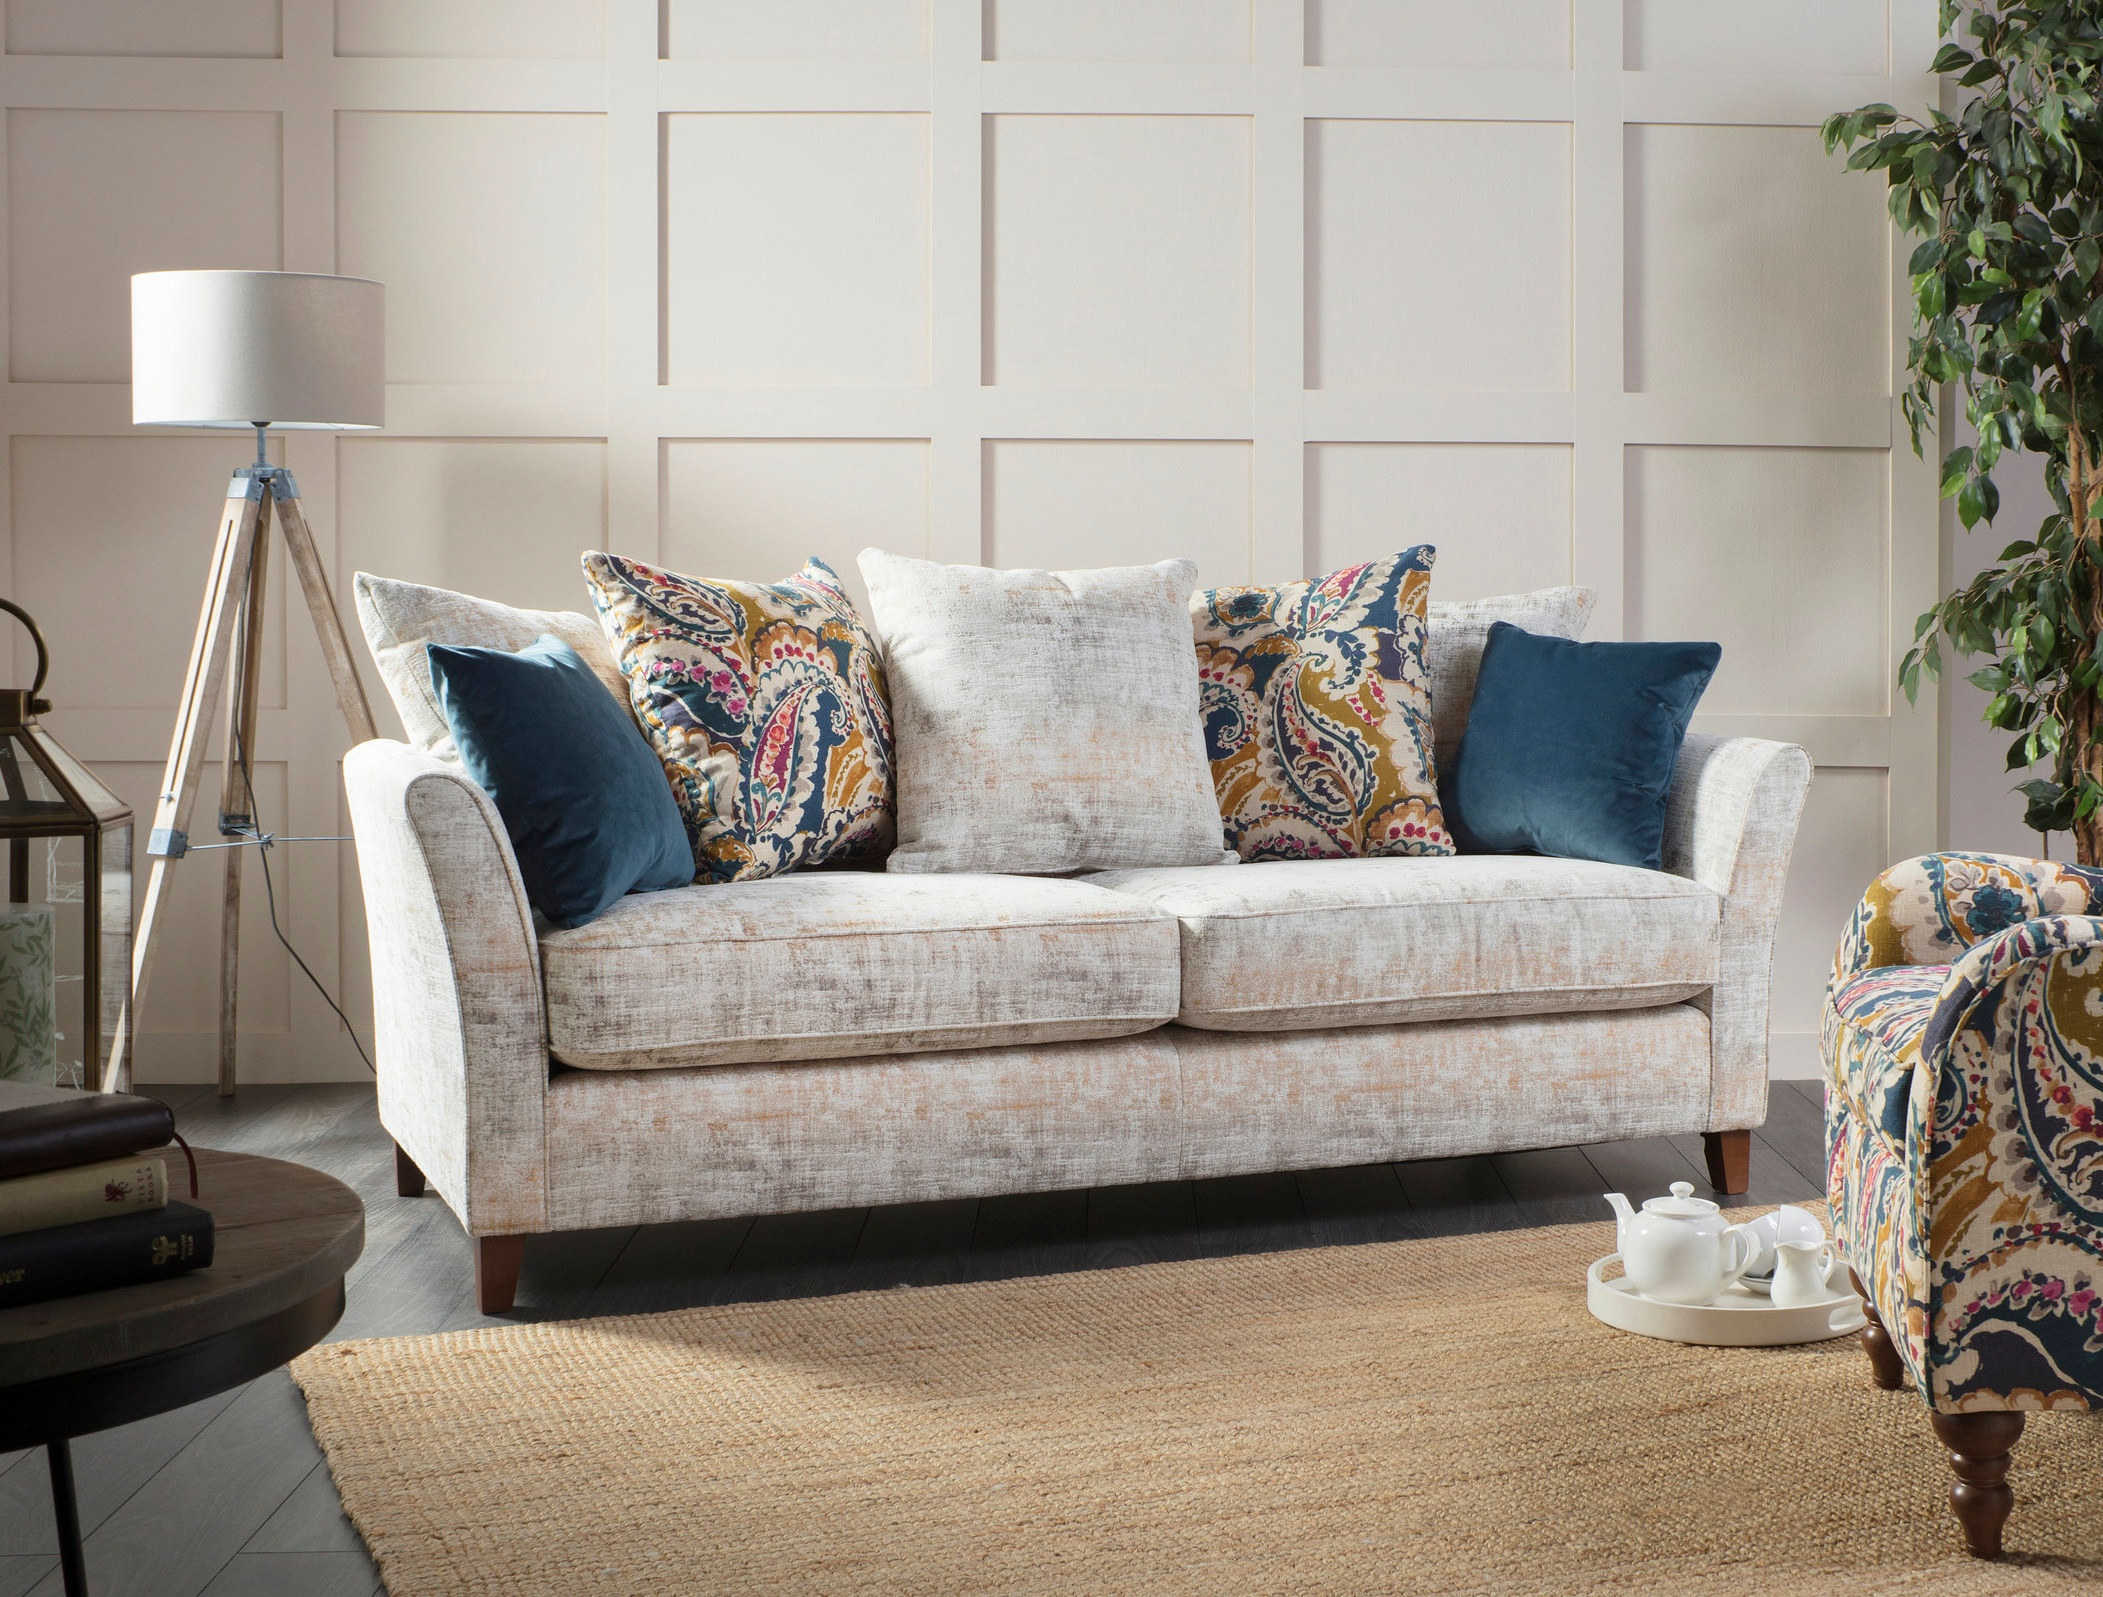 The Lily   Extra Large: 208(W) 98(D) 92(H)  Large Sofa: 188(W) 98(D) 92(H)  Midi Sofa: 164(W) 98(D) 92(H)  Petit Sofa: 145(W) 98(D) 92(H)  Chair: 91(W) 98(D) 92(H)   Sofa prices from: £585